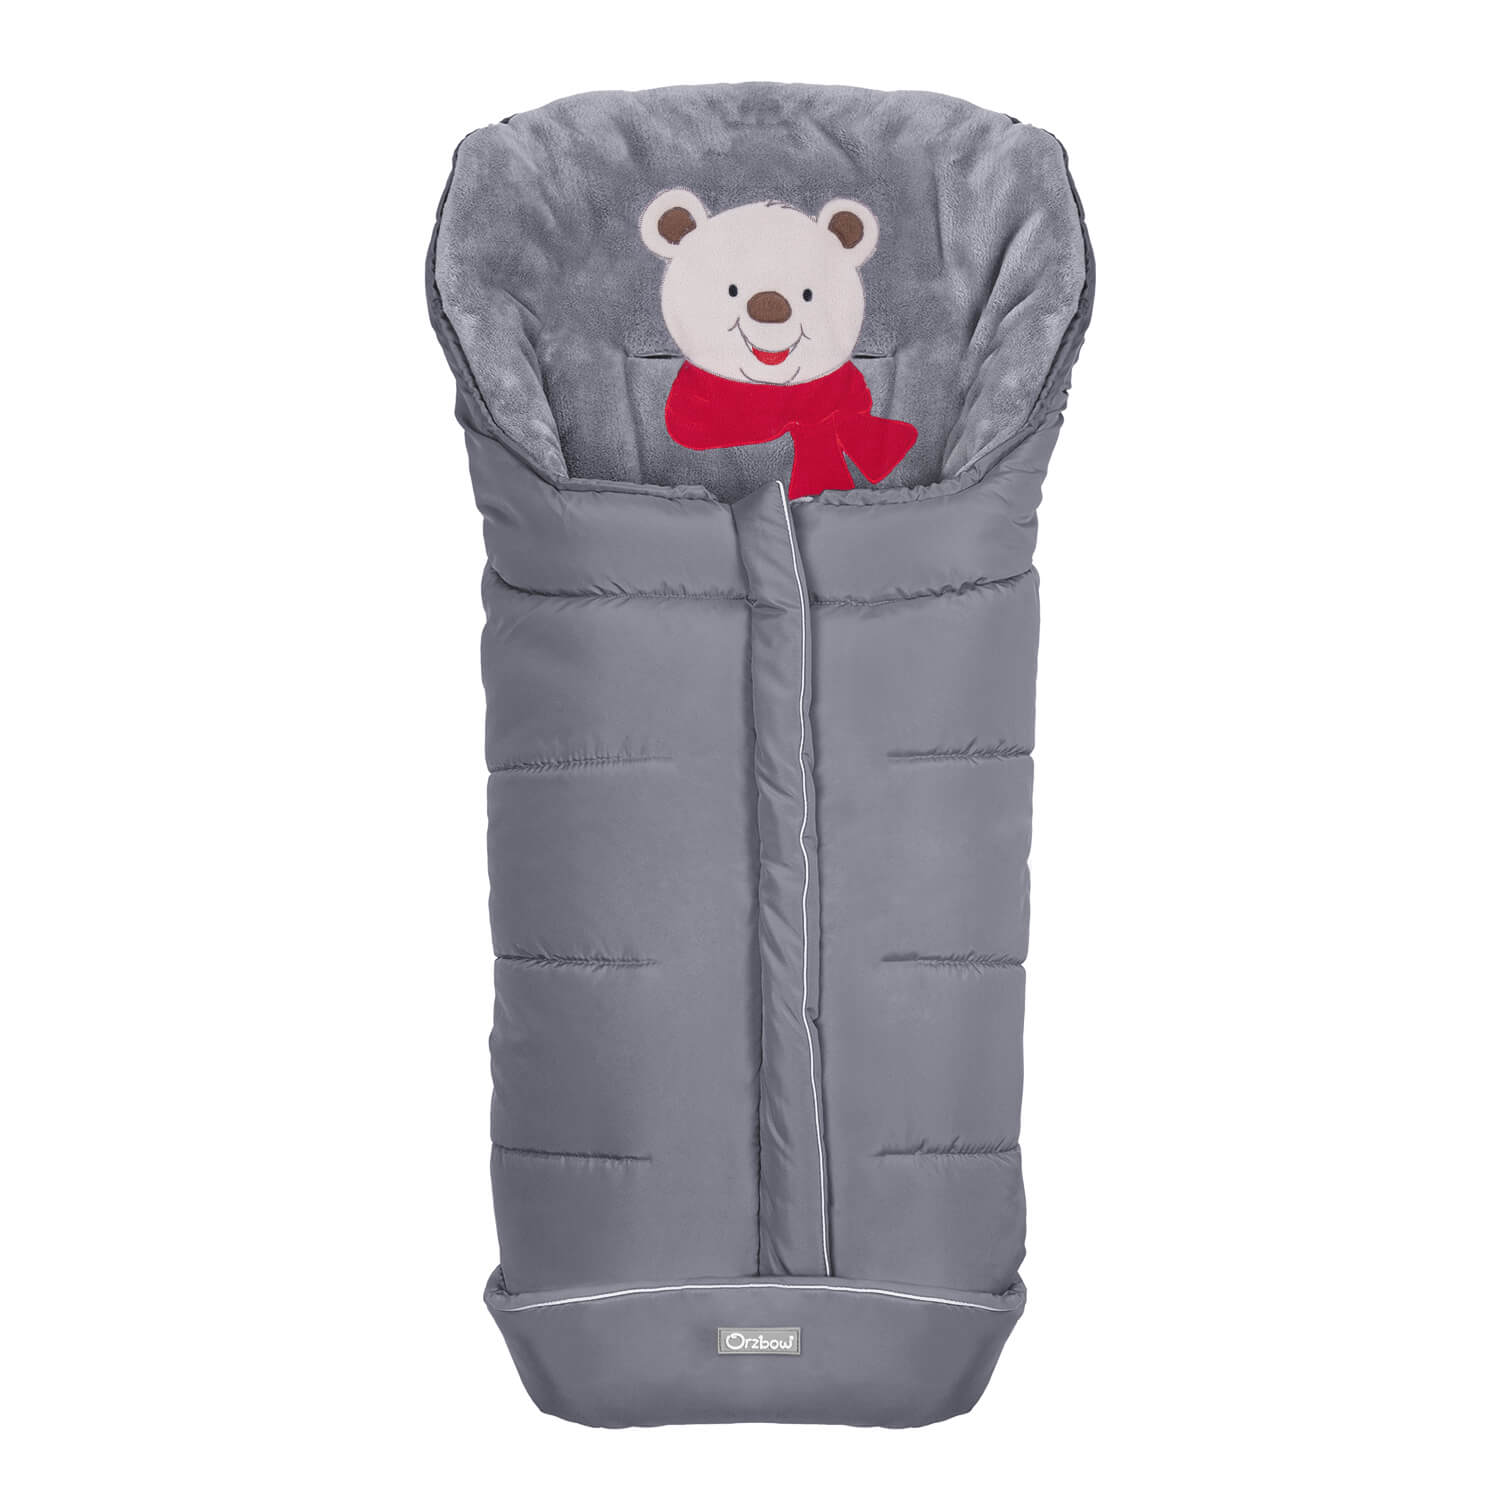 ASB Classic Little bear footmuff